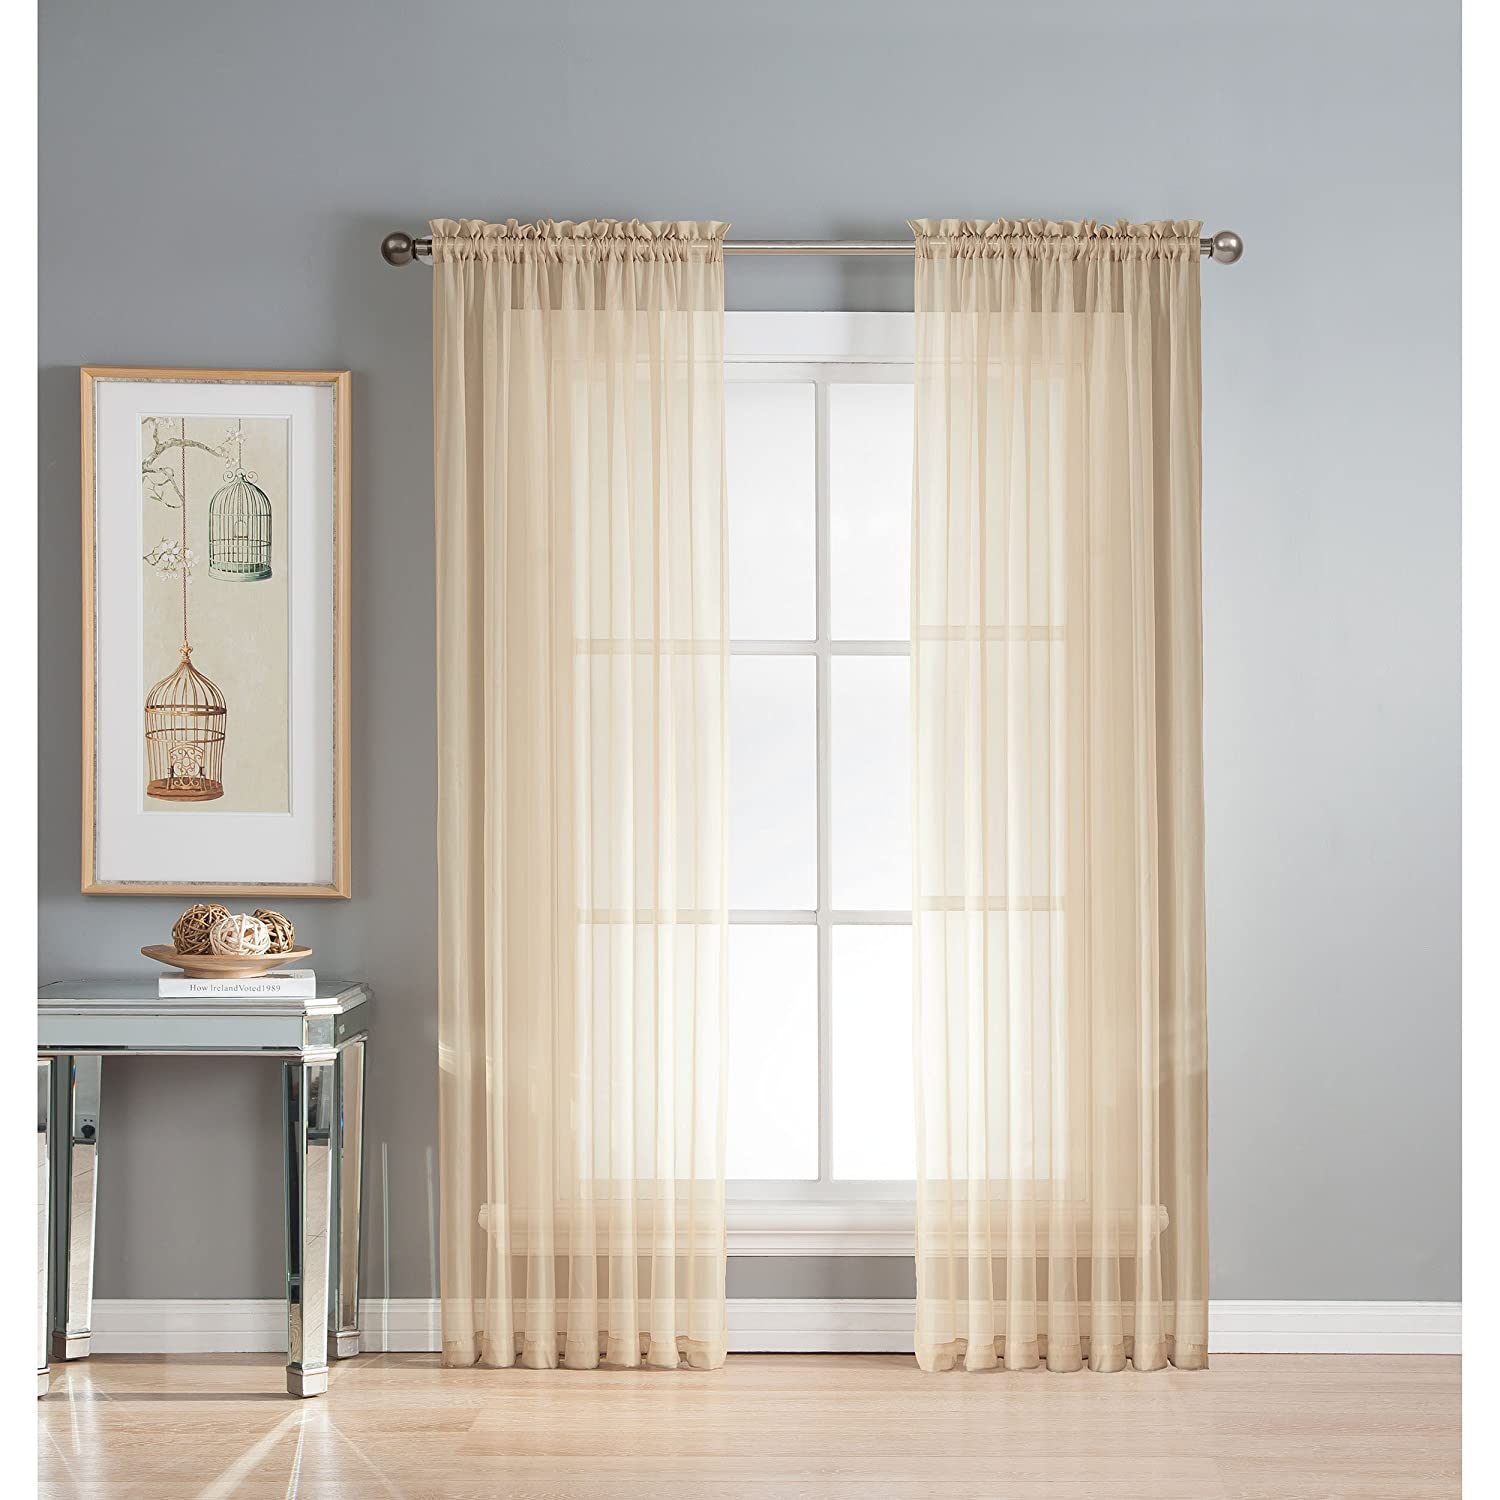 PURPLE// IVORY CHARCOAL// IVORY STRIPED EYELET THICK VOILE  NET CURTAIN PANEL